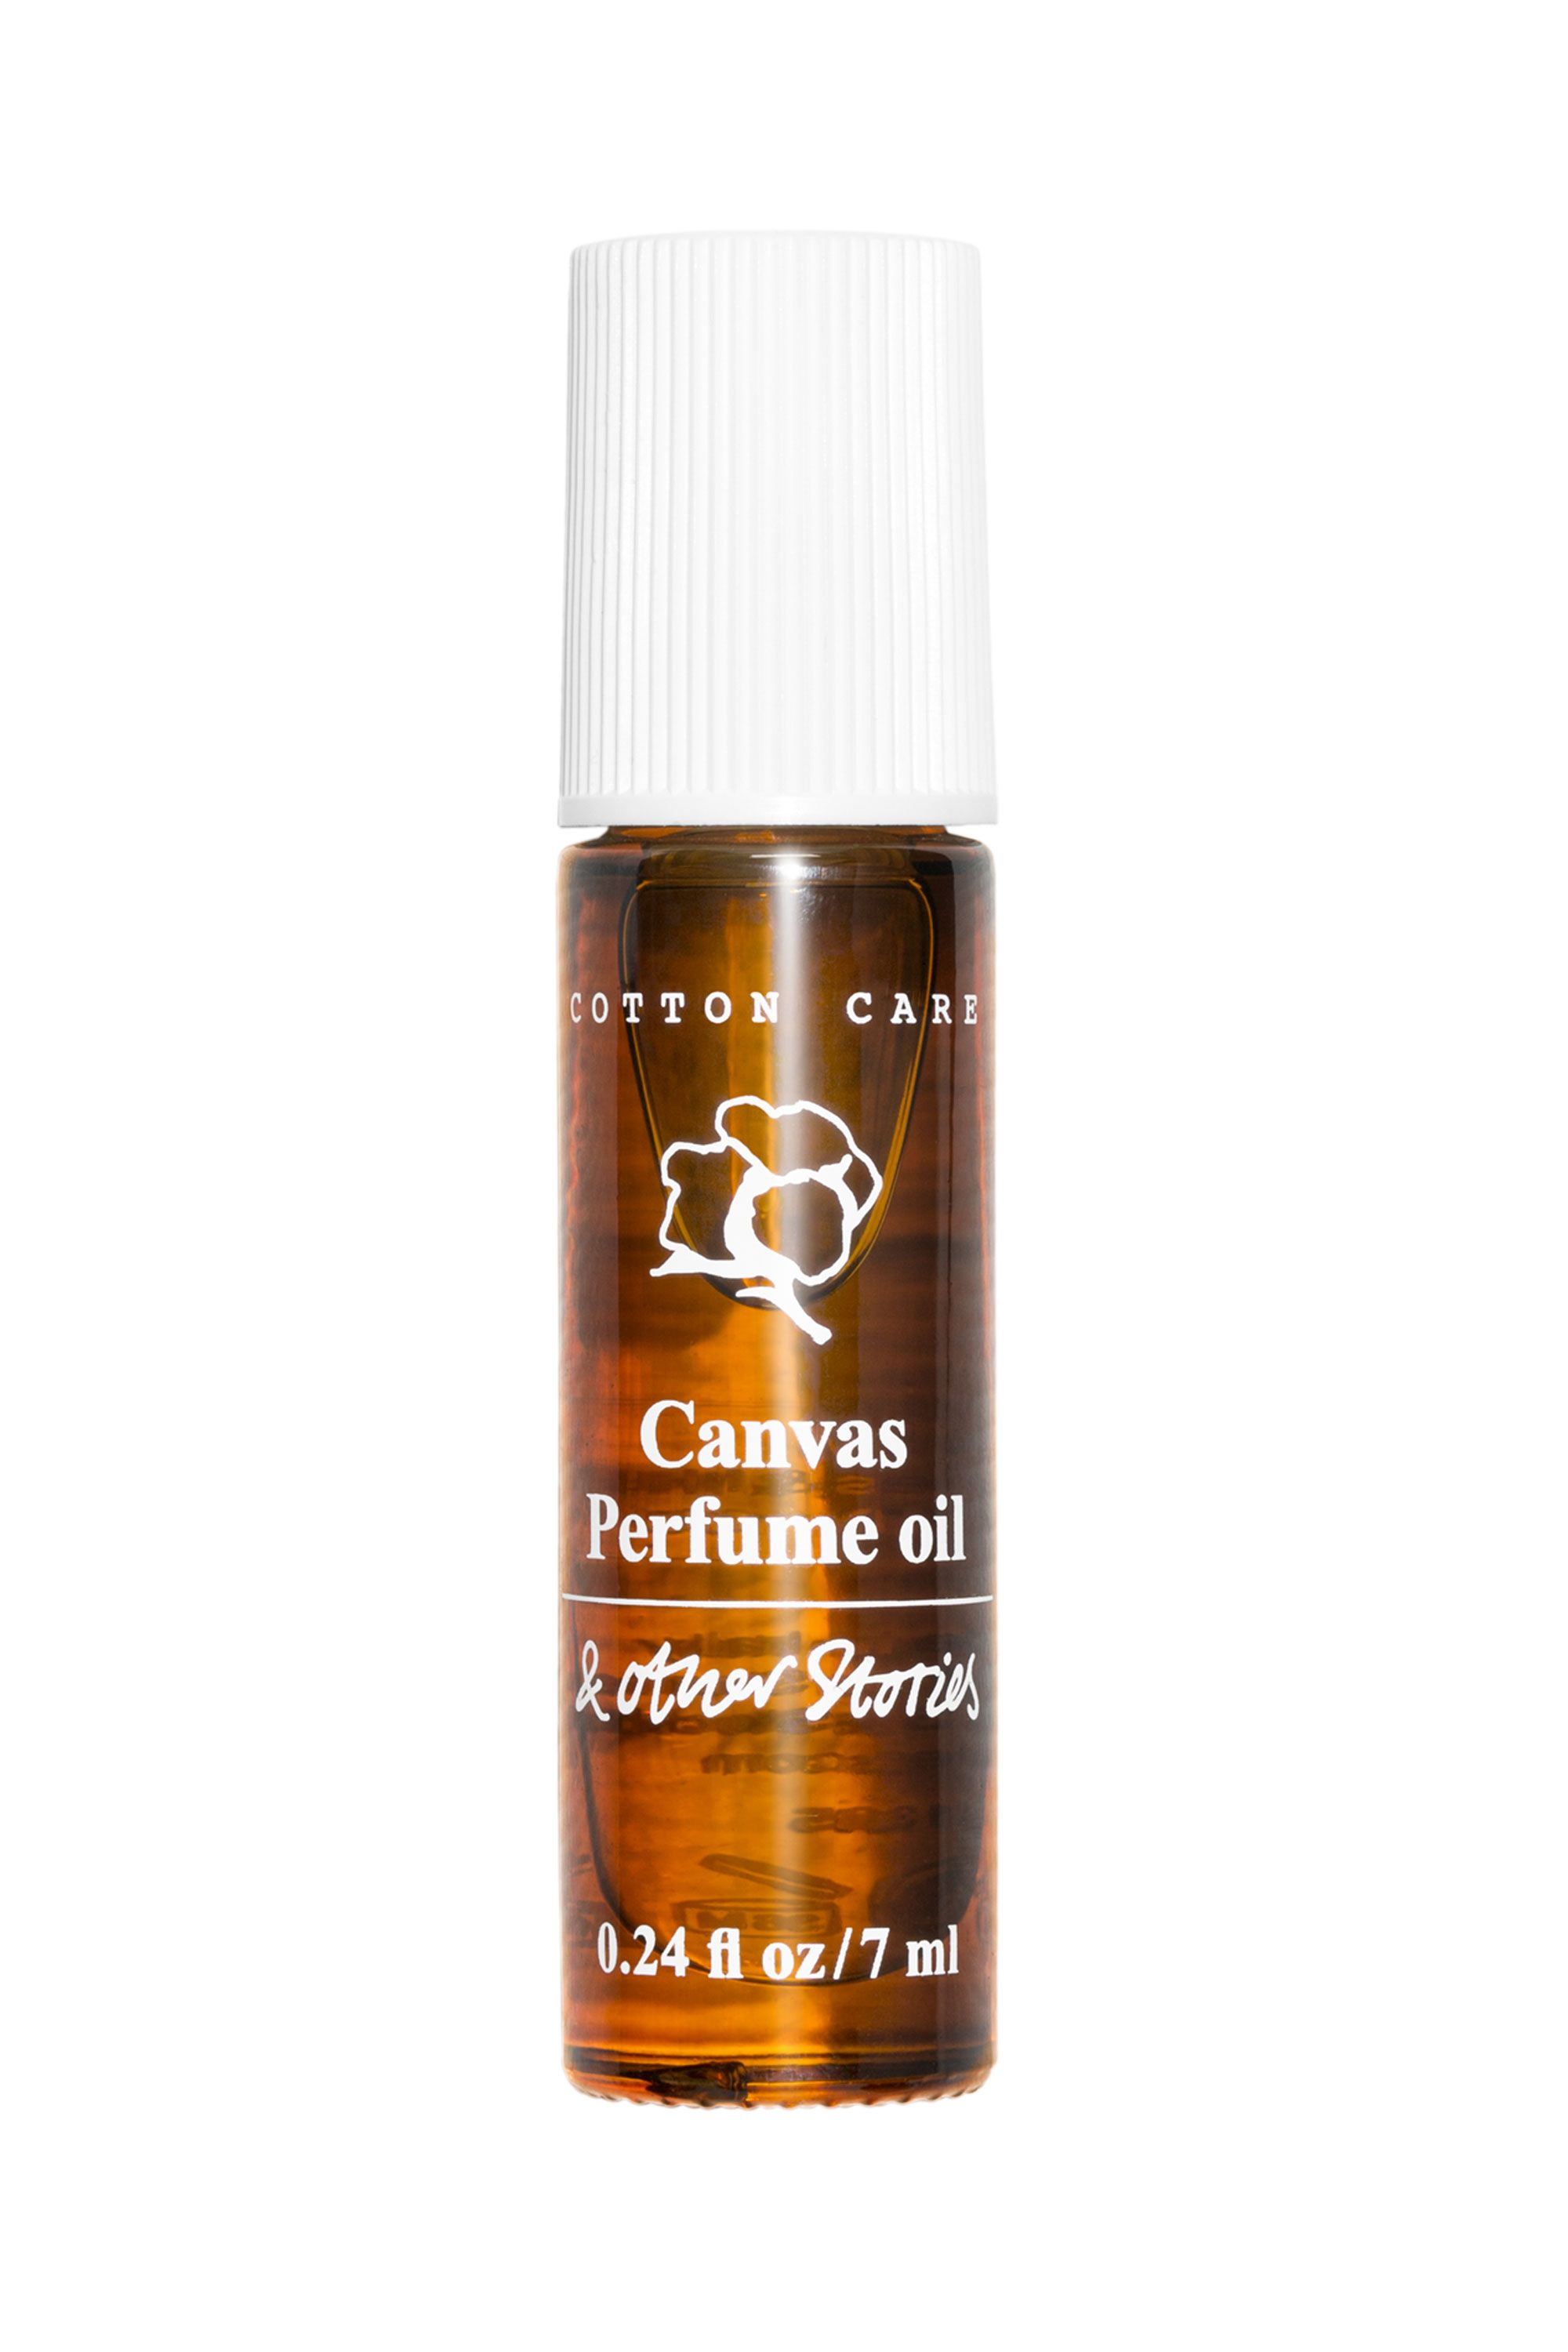 "<p>If you have a few summer getaways planned, this little vial is perfect for tucking into a carry-on or an overnight bag. And, oh yeah, it smells divine. The clean scent conjures up images of freshly washed cotton sheets. </p><p><br></p><p>$29 for .24 fl. oz., <a href=""http://www.stories.com/us/Beauty/Bath_Body/Fragrance_mists/Canvas_Perfume_Oil/590725-102394790.1"" target=""_blank"">Stories.com</a> </p>"